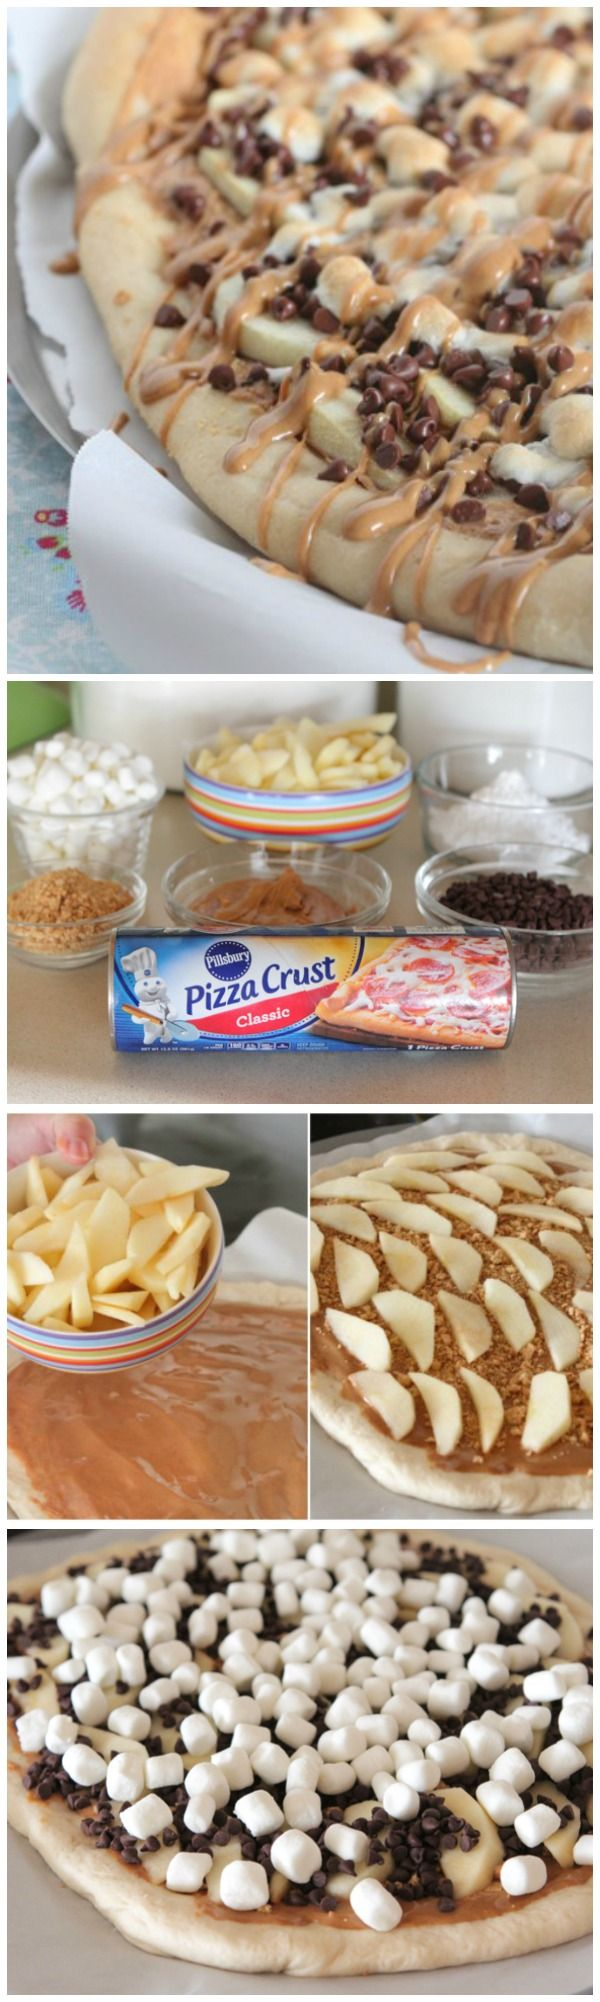 Apples + peanut butter + s'mores toppings = amazing dessert pizza!